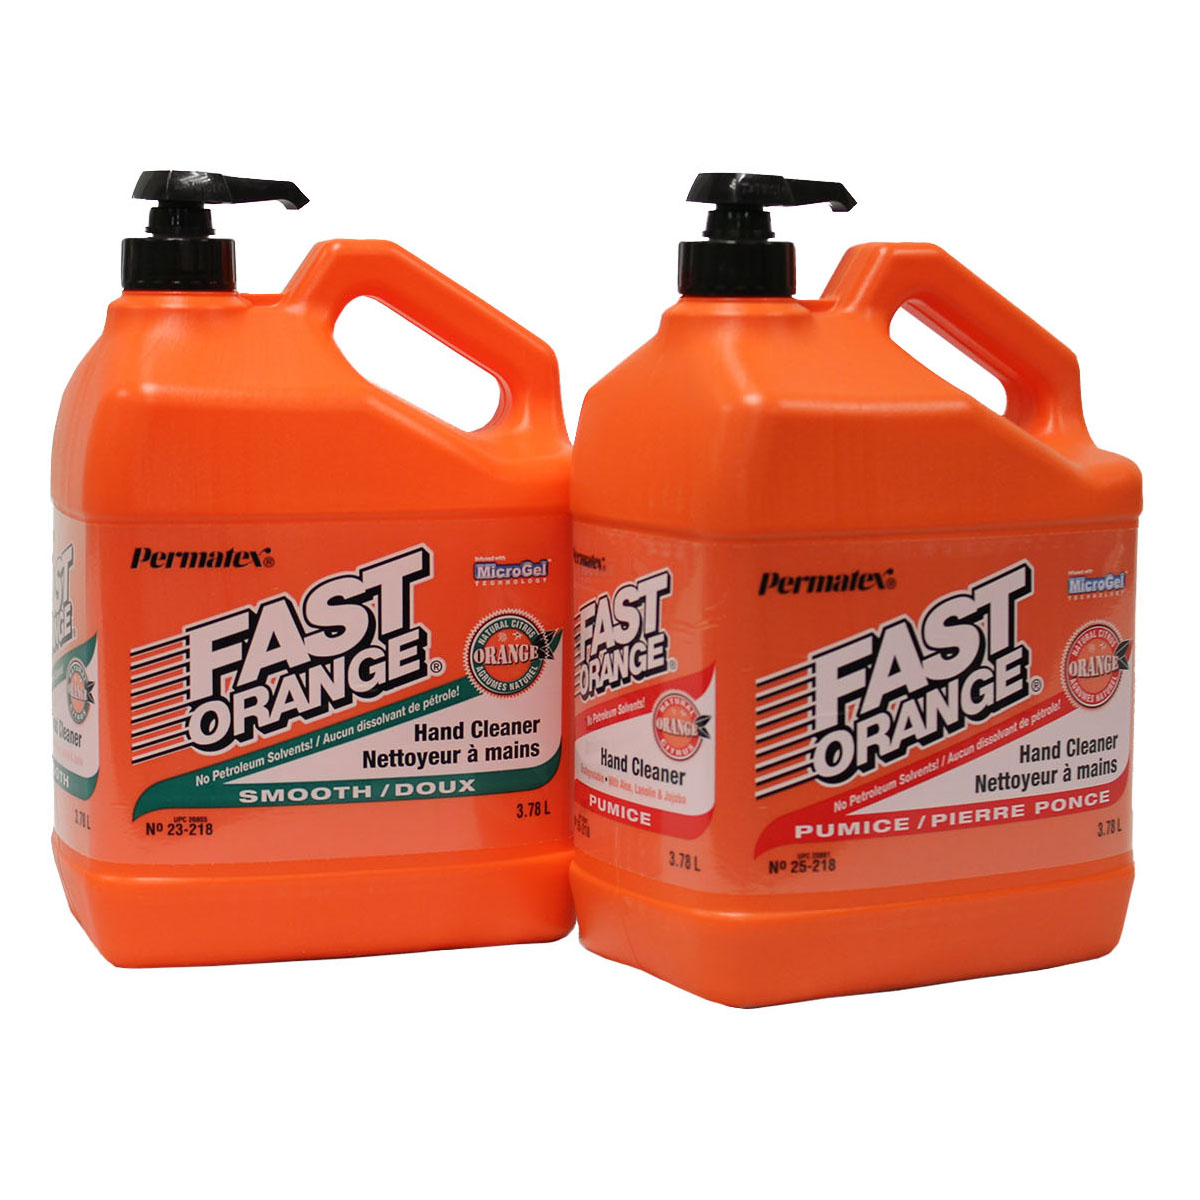 Fast Orange Hand Cleaner - 3.78L - with Pumice